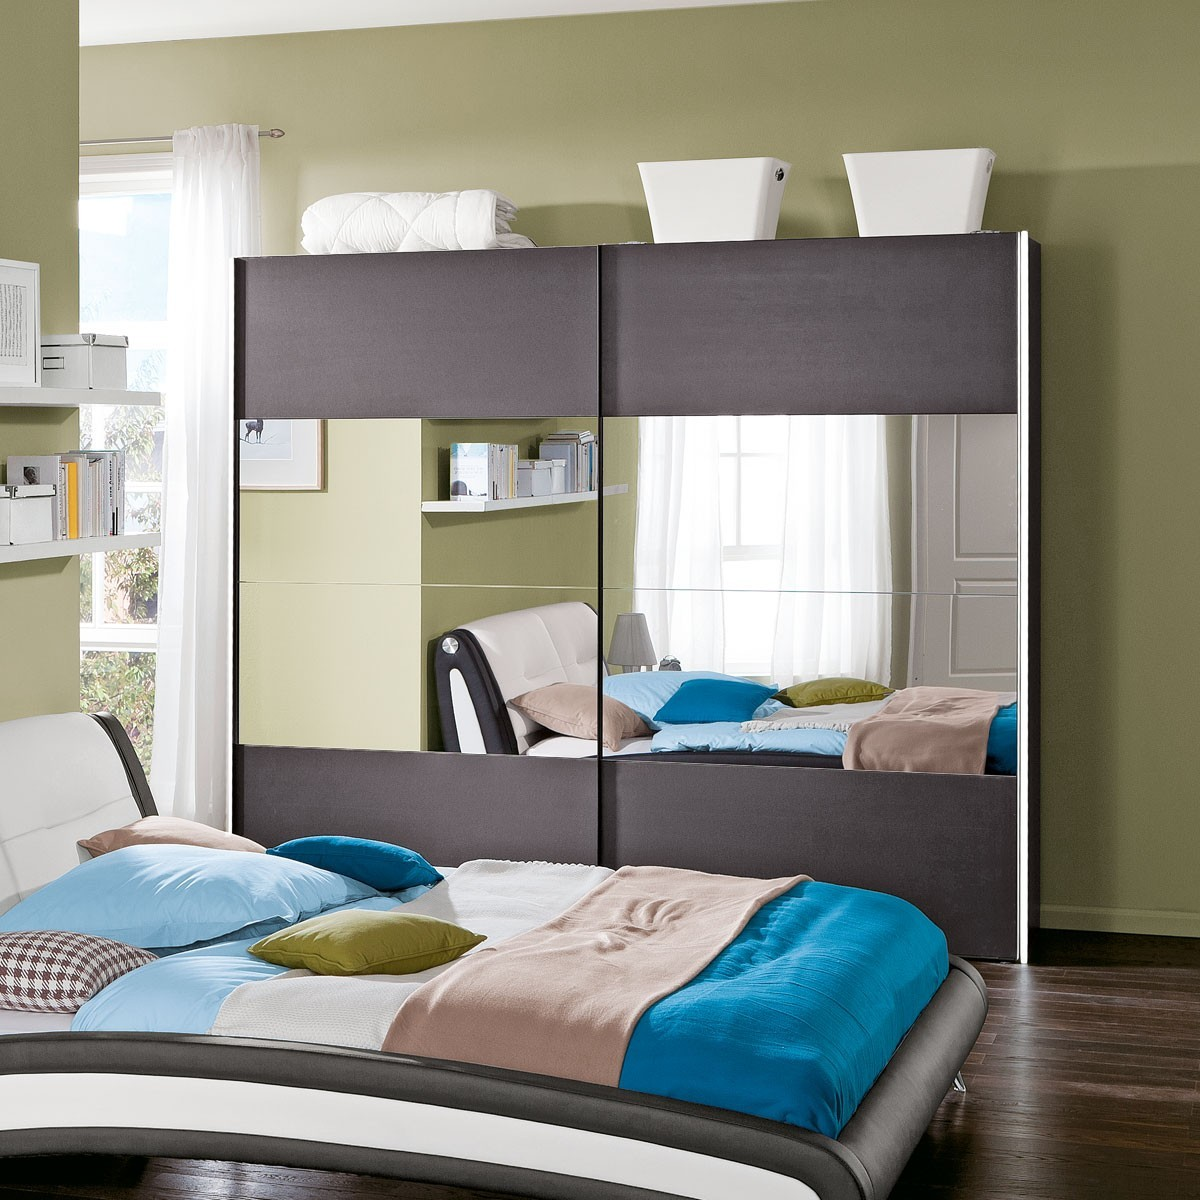 kleiderschr nke home immoviva design und luxus f r ihr zuhause. Black Bedroom Furniture Sets. Home Design Ideas